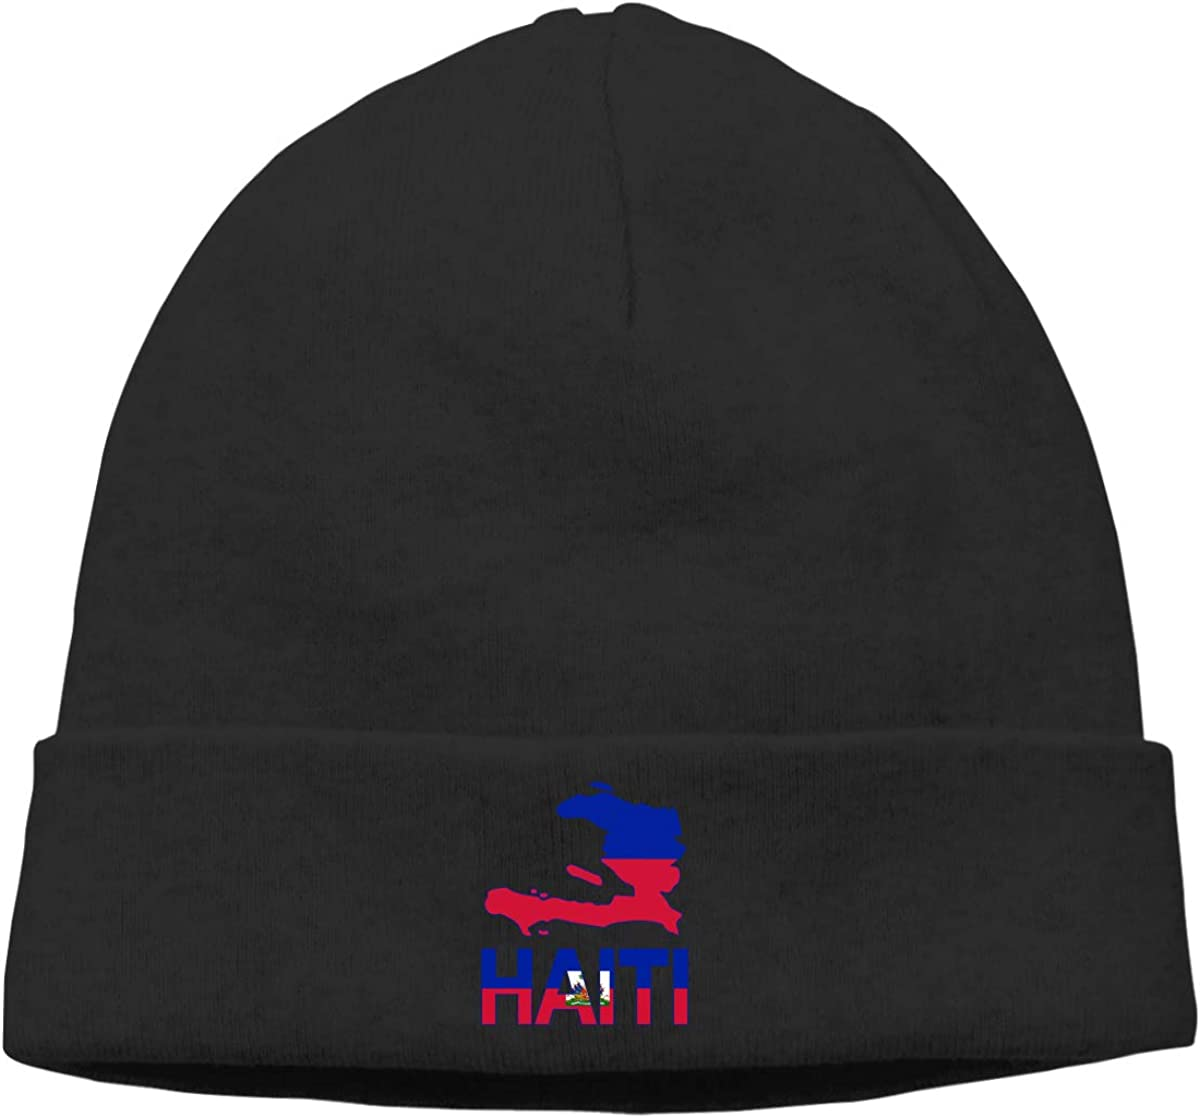 Haiti Map Flag and Text Unisex Solid Color Beanie Hat Thin Stretchy /& Soft Winter Cap